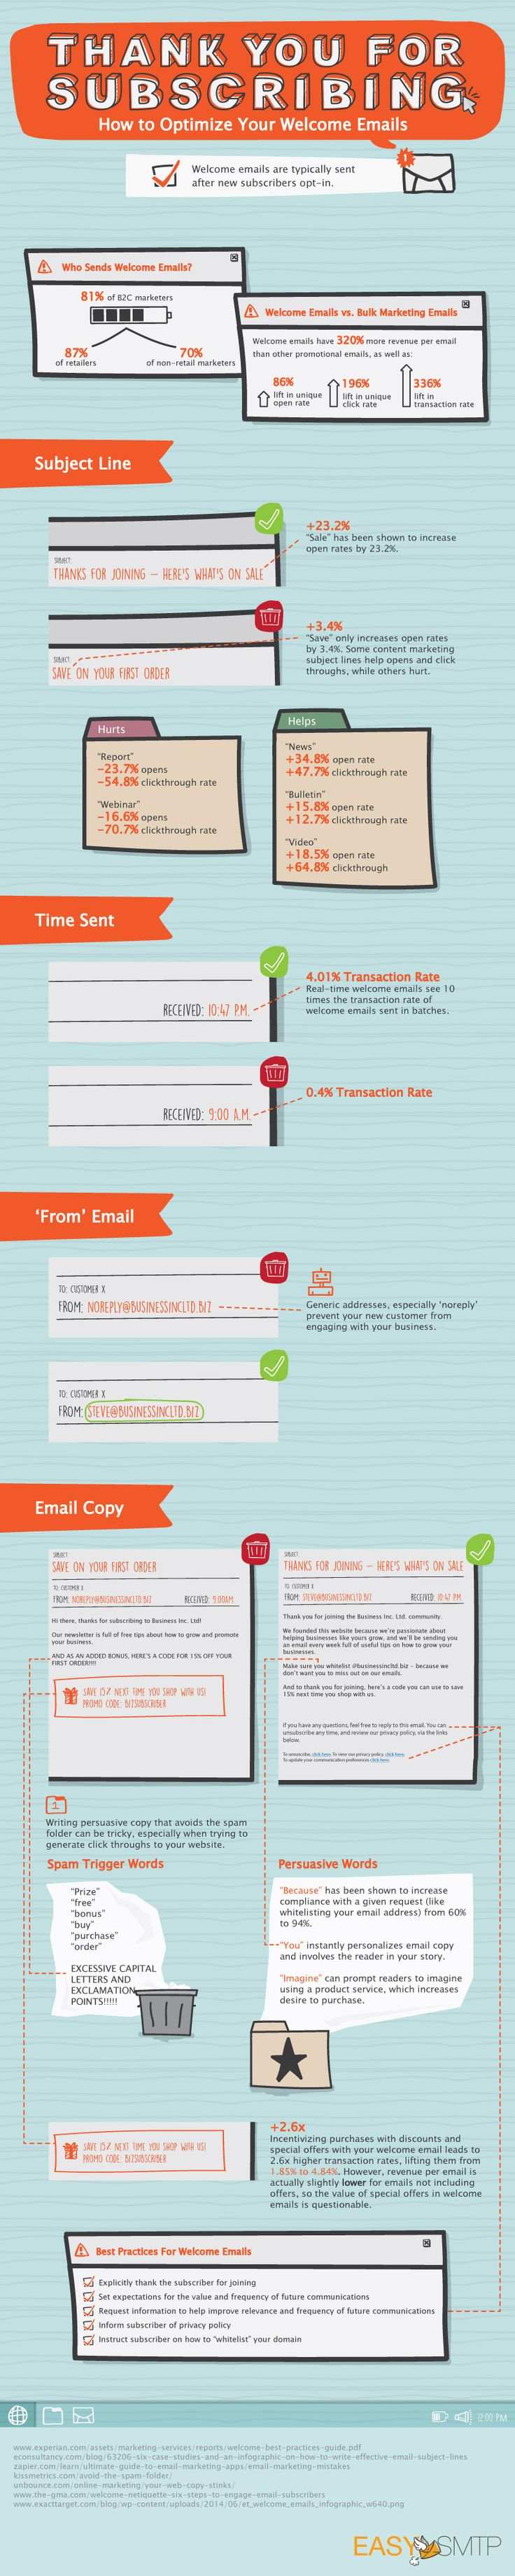 Here are some of the best practices to optimize and squeeze the juice out of your welcome emails.